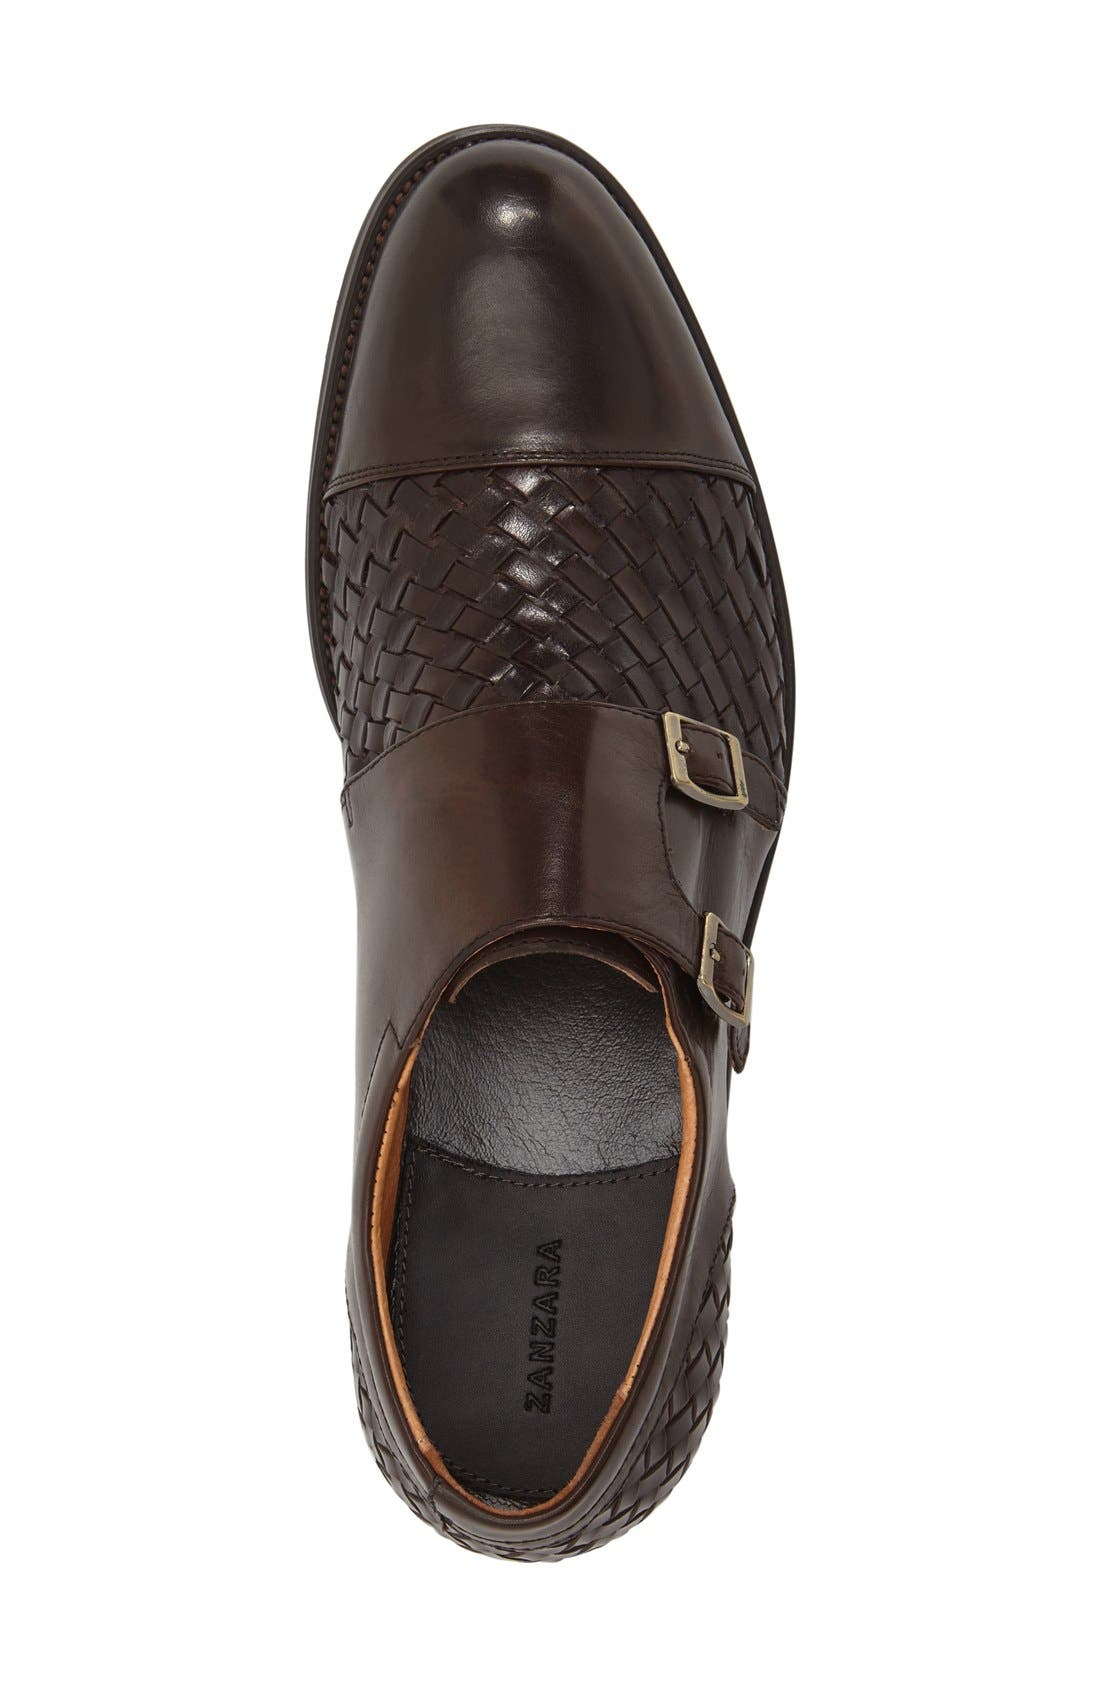 Alternate Image 3  - Zanzara 'Mahler' Monk Strap Shoe (Men)